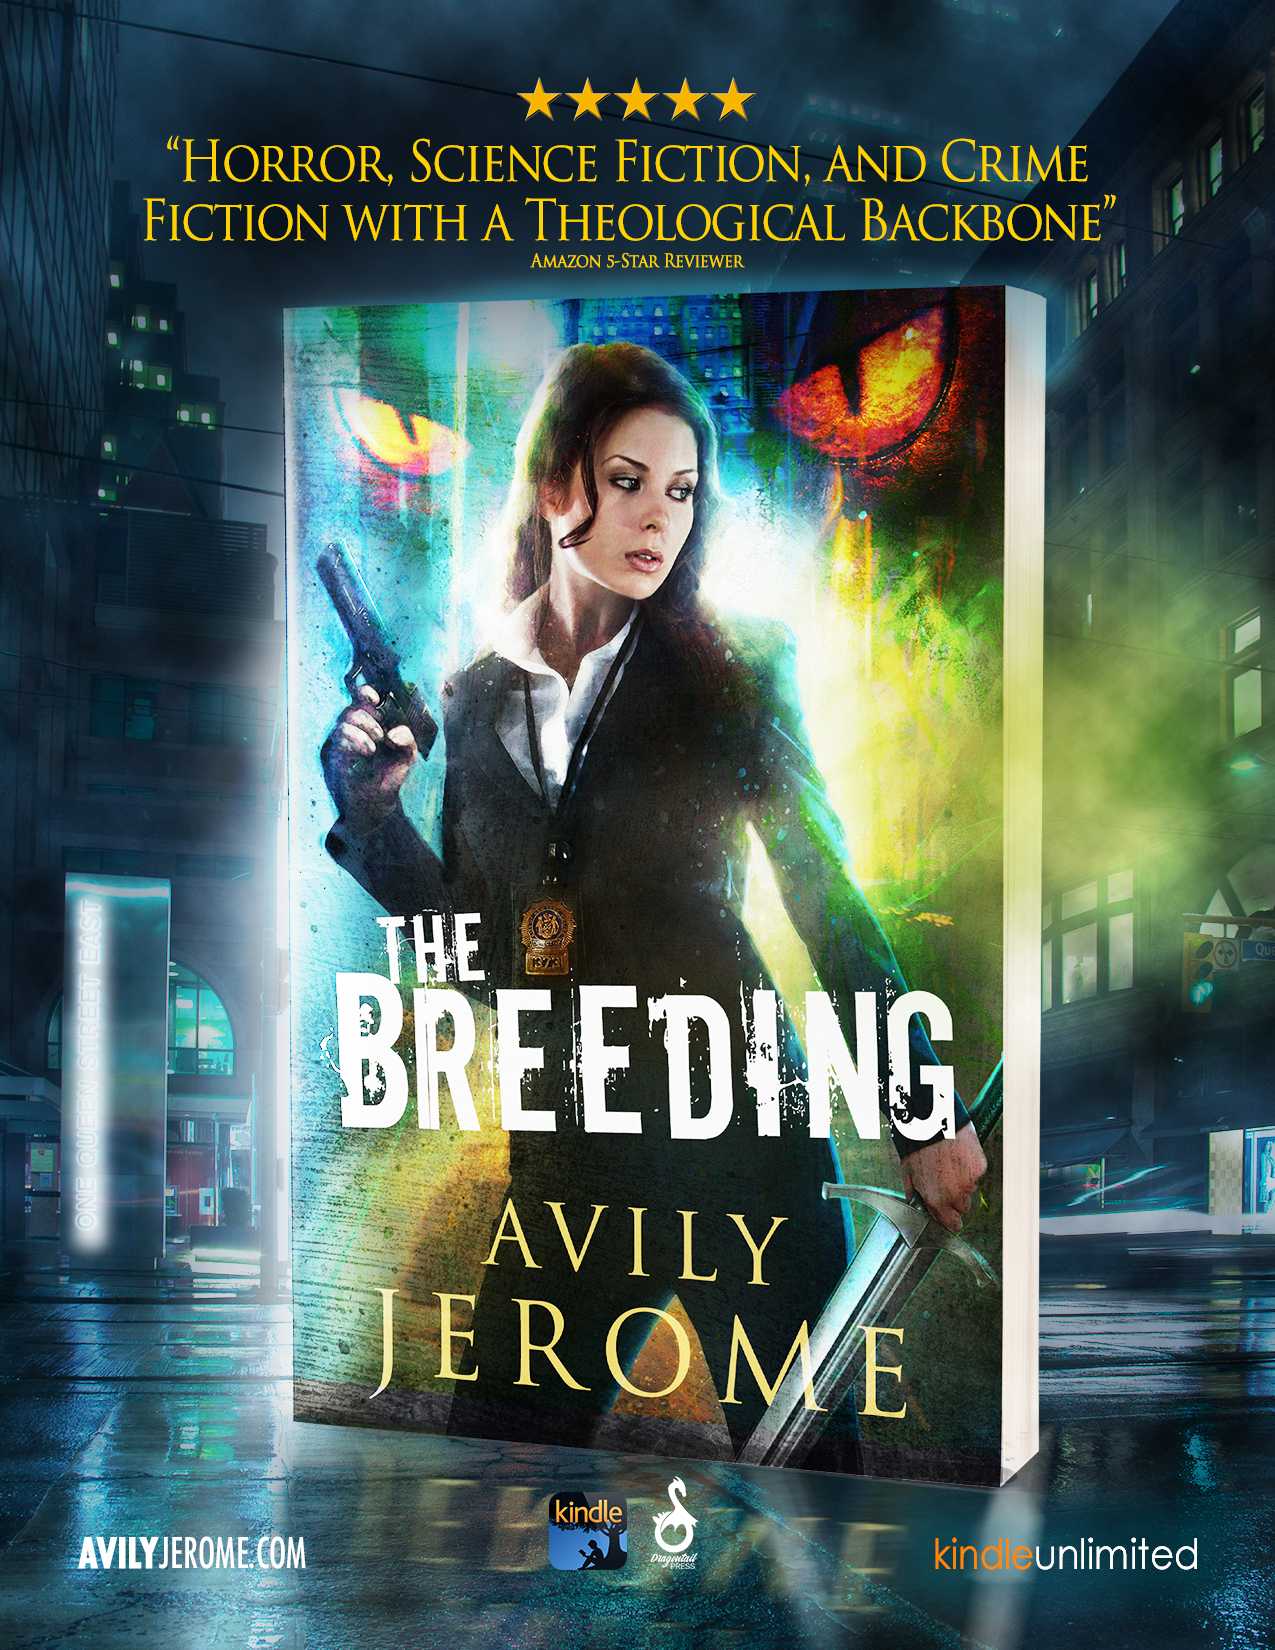 The Breeding by Avily Jerome